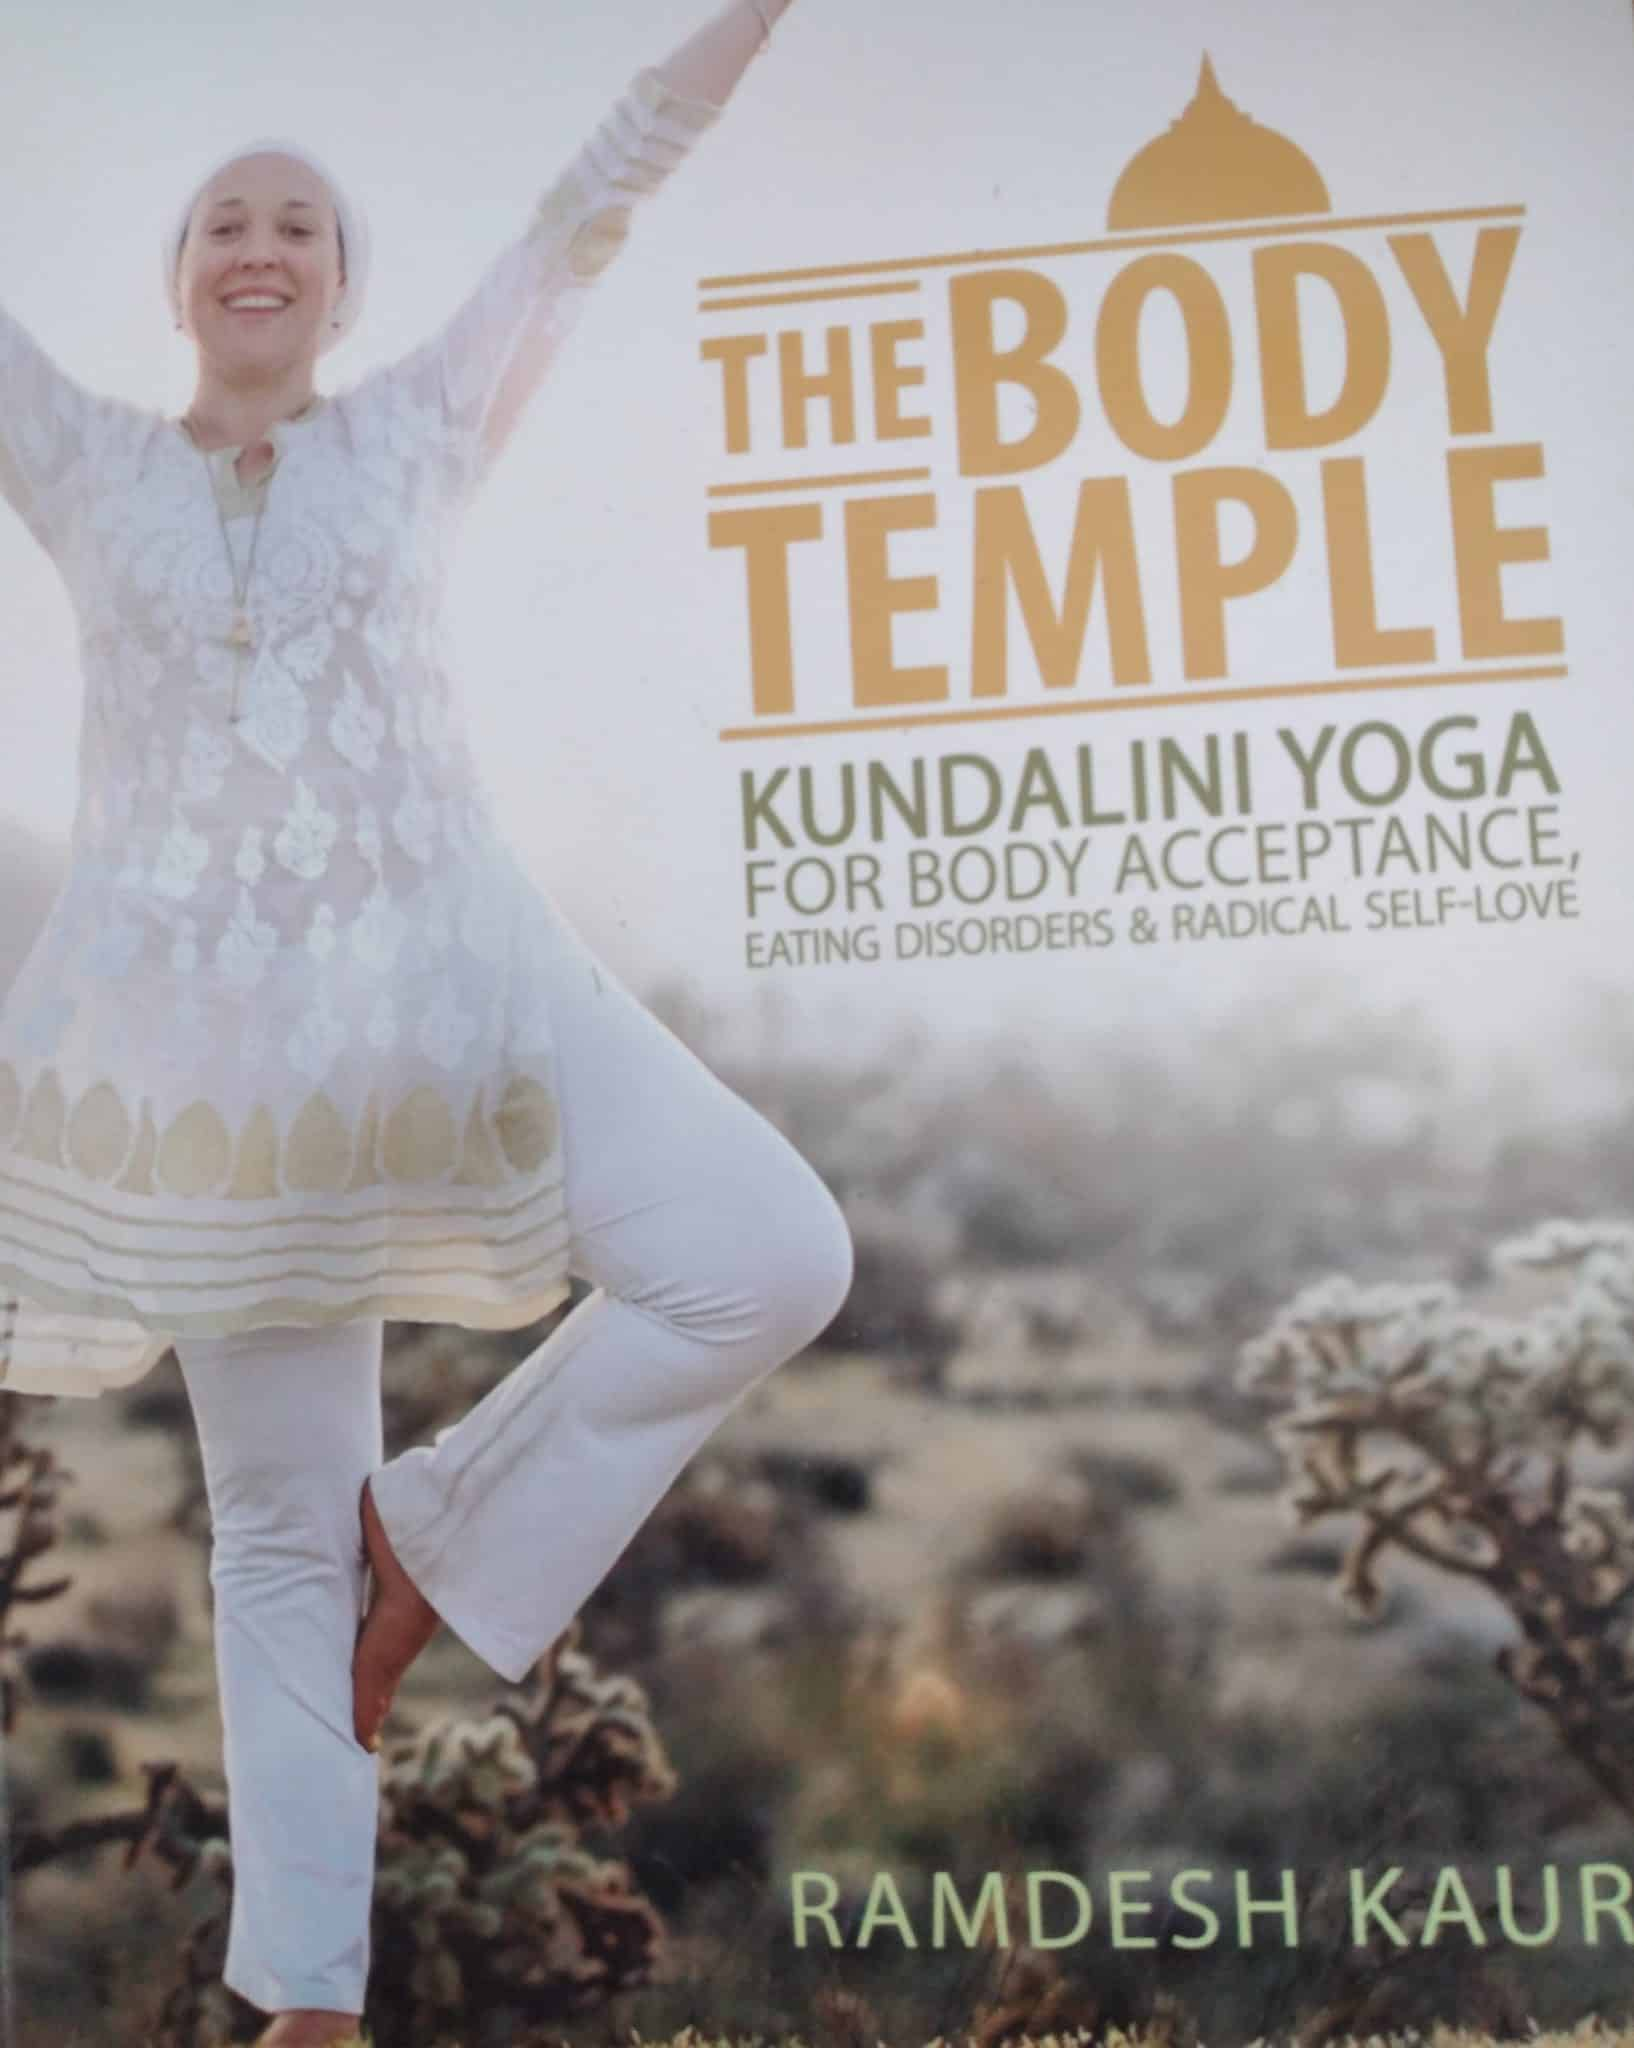 The Body Temple. Kundalini Yoga For Body Acceptance. Eating Disorders & Radical Self-love